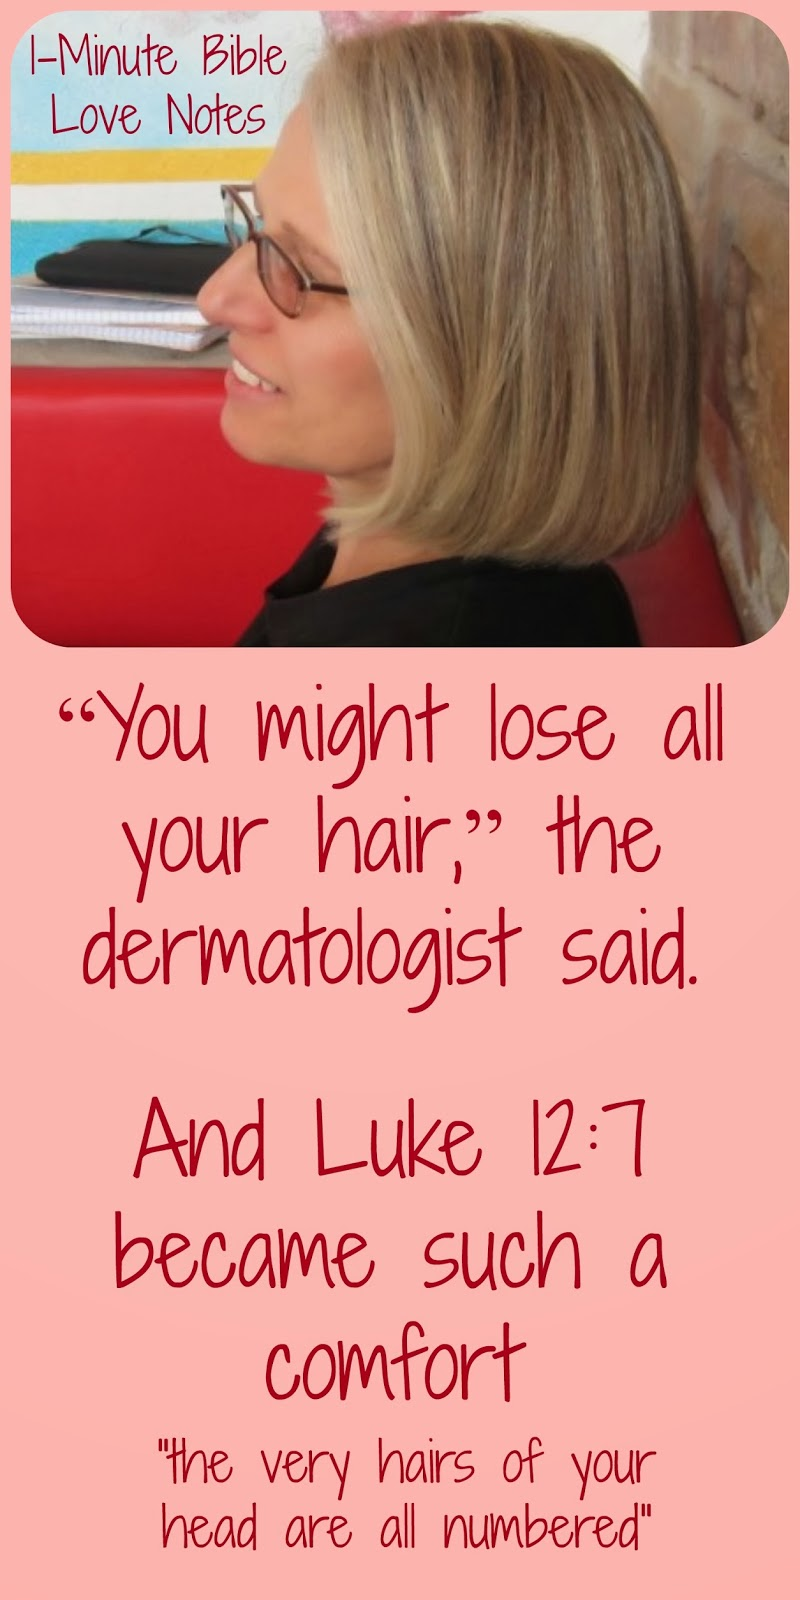 Luke 12:7, losing hair, God knows the number of hairs on our head, comfort